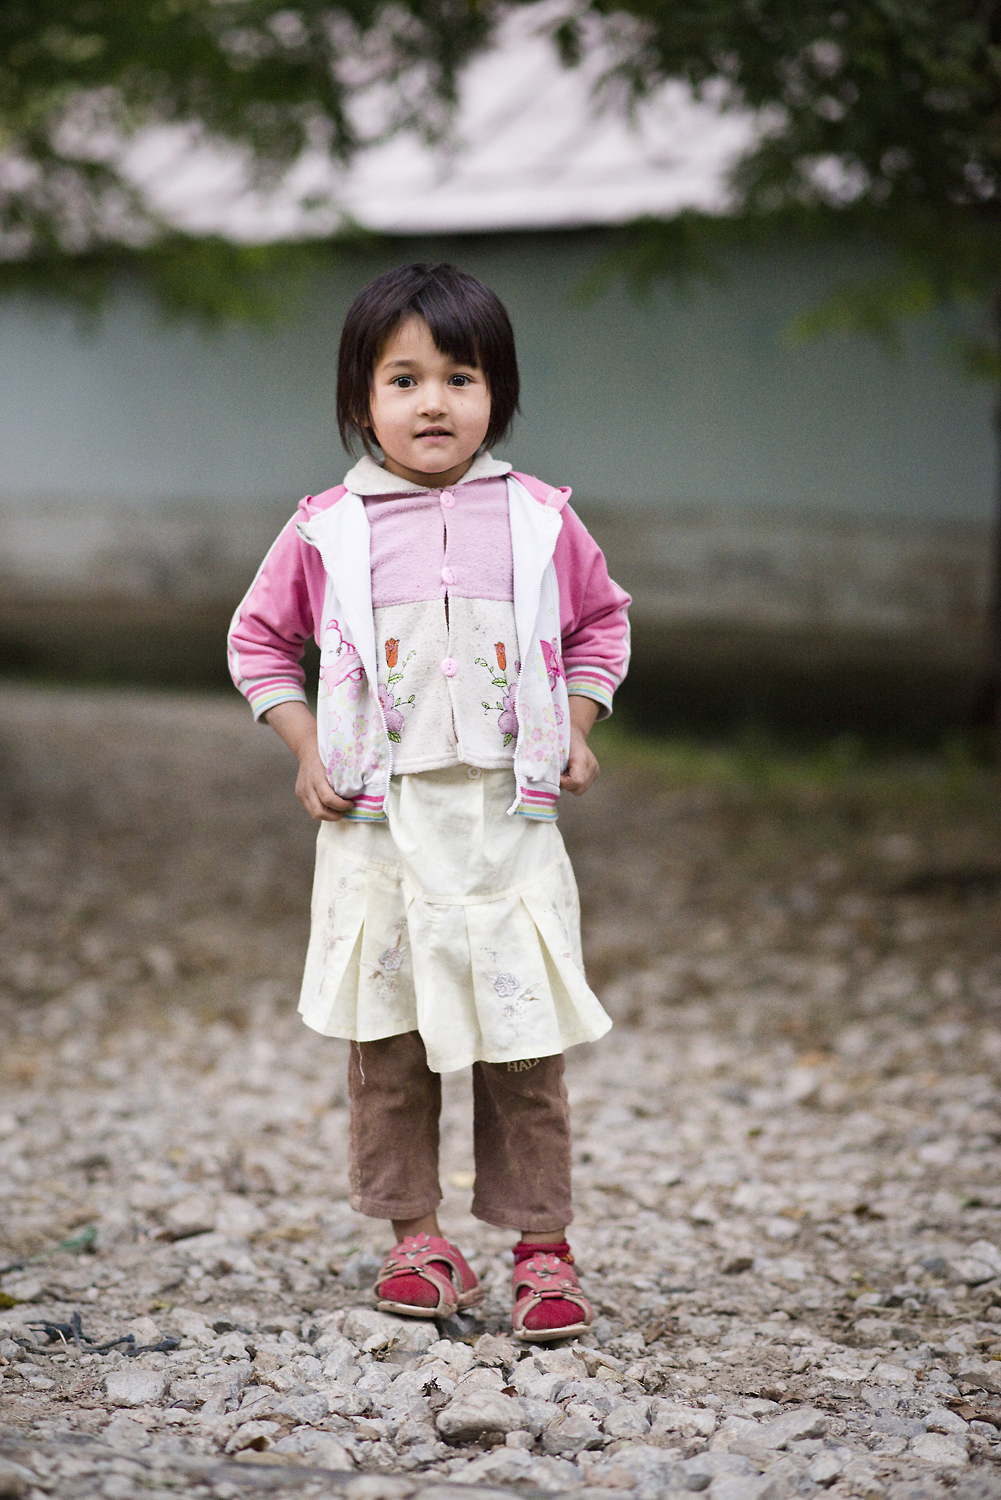 Mahaiba stands for a photo near her home in the mono-ethnic Uzbek town of Arslanbob in Southern Kyrgyzstan in Sept 2013.